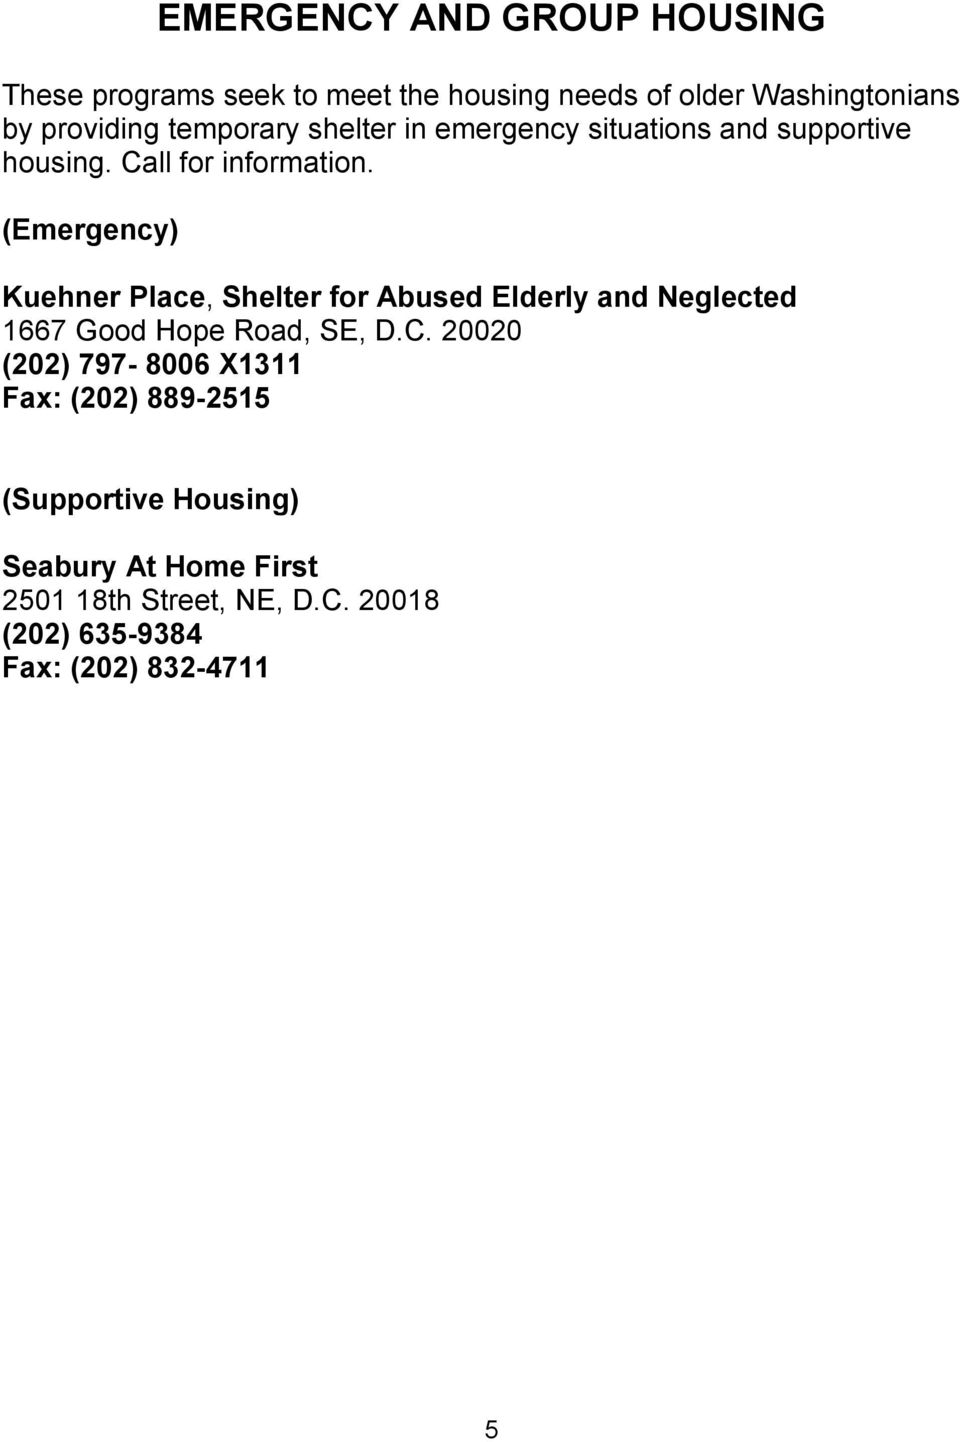 (Emergency) Kuehner Place, Shelter for Abused Elderly and Neglected 1667 Good Hope Road, SE, D.C.